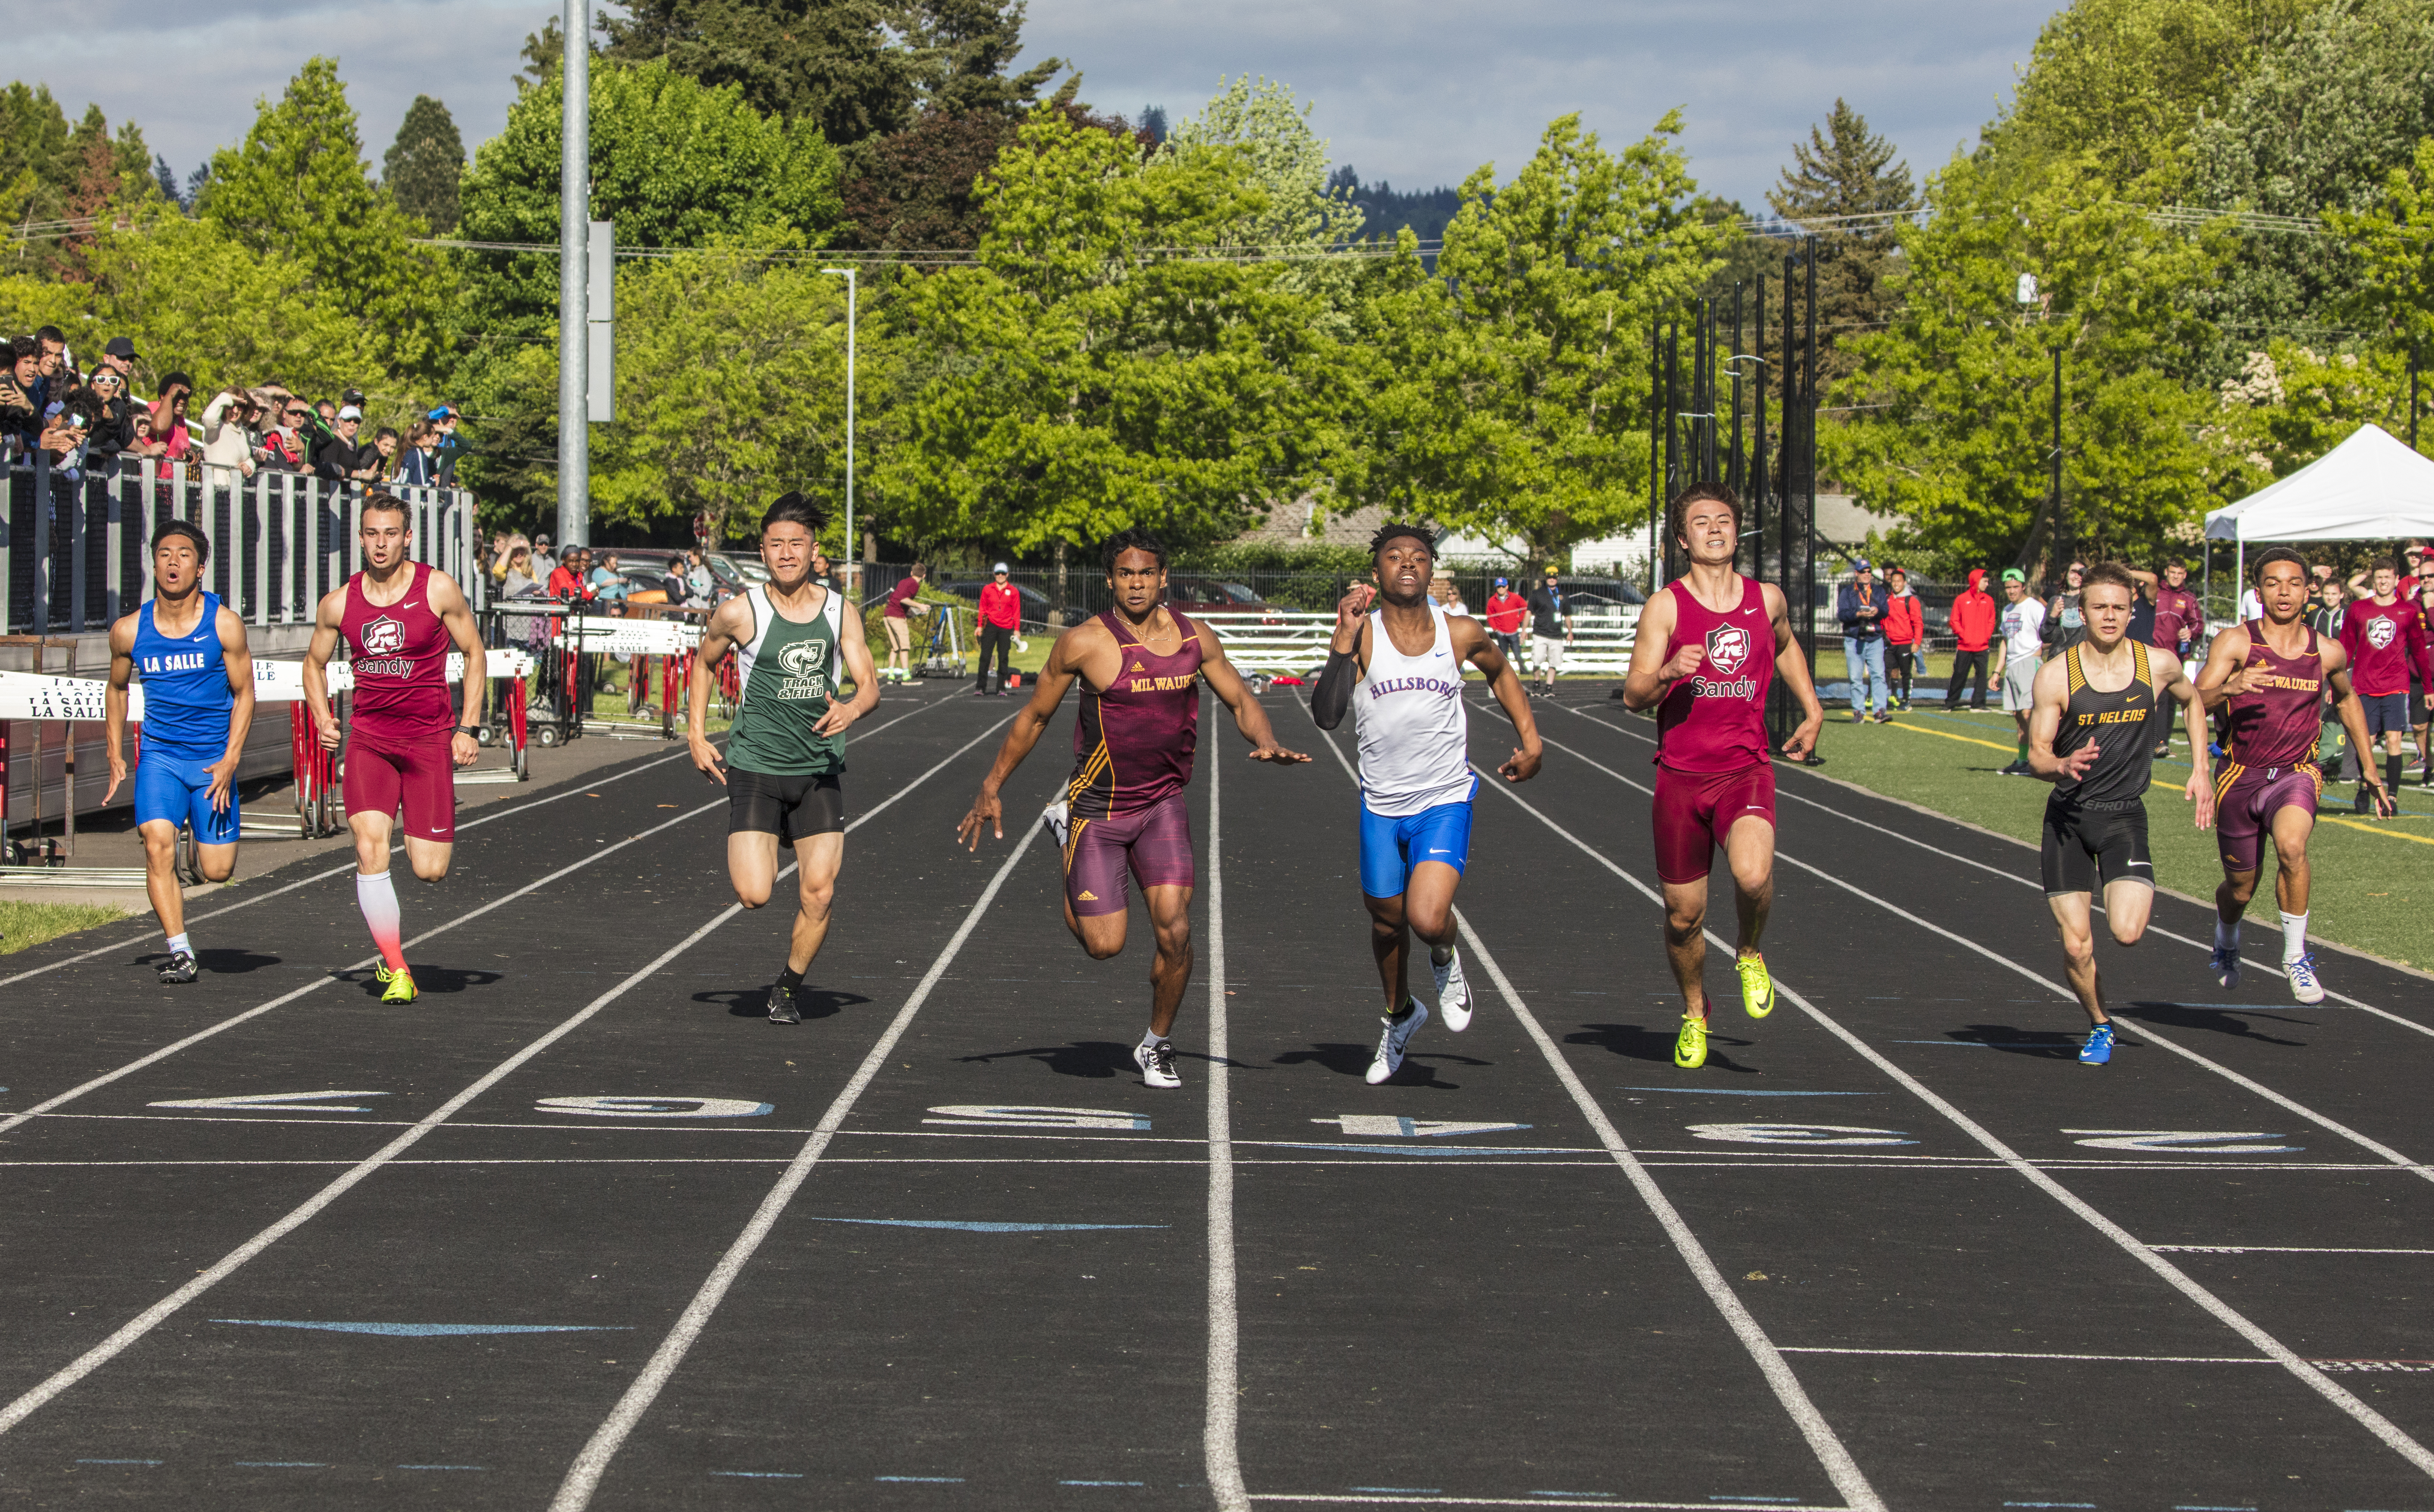 Congratulations to our Track and Field Team on a great season